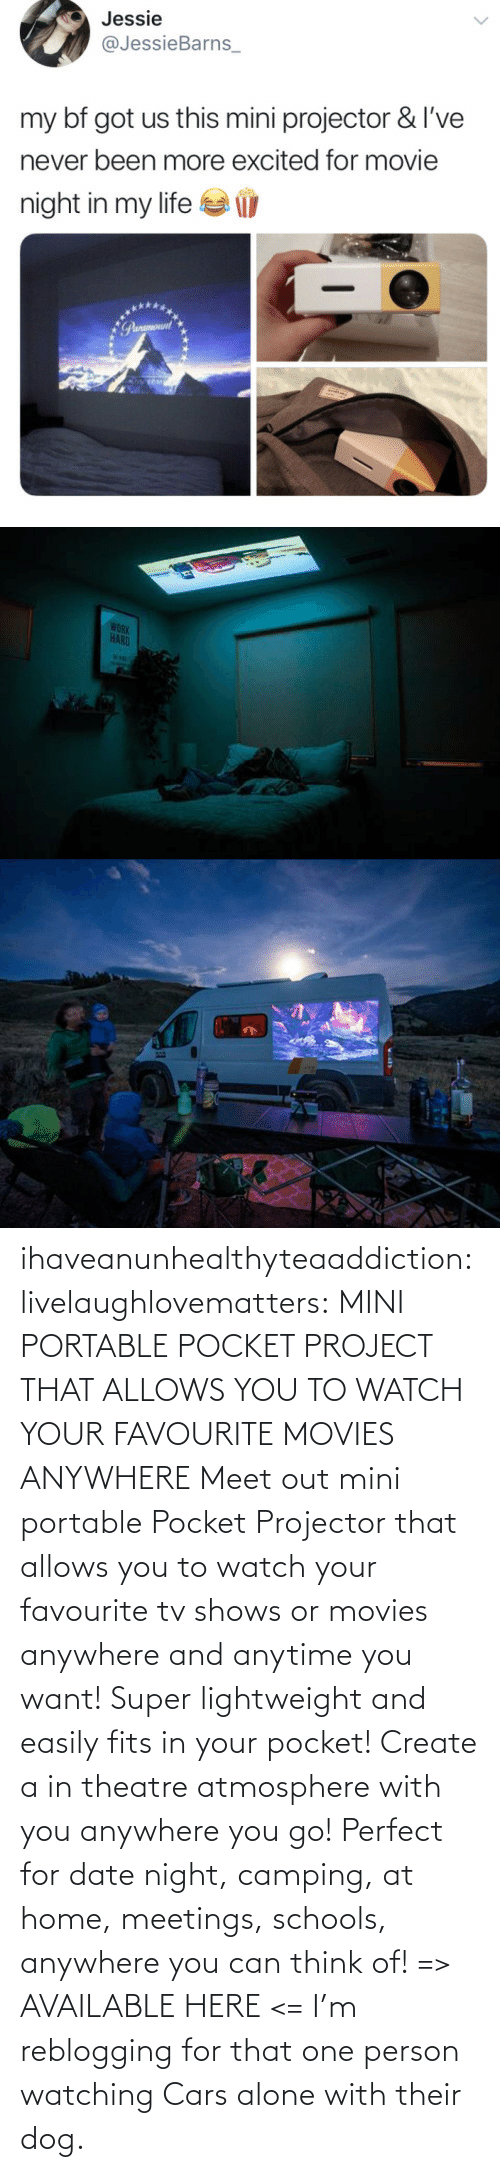 You Go: ihaveanunhealthyteaaddiction:  livelaughlovematters: MINI PORTABLE POCKET PROJECT THAT ALLOWS YOU TO WATCH YOUR FAVOURITE MOVIES ANYWHERE Meet out mini portable Pocket Projector that allows you to watch your favourite tv shows or movies anywhere and anytime you want! Super lightweight and easily fits in your pocket! Create a in theatre atmosphere with you anywhere you go! Perfect for date night, camping, at home, meetings, schools, anywhere you can think of! => AVAILABLE HERE <=    I'm reblogging for that one person watching Cars alone with their dog.